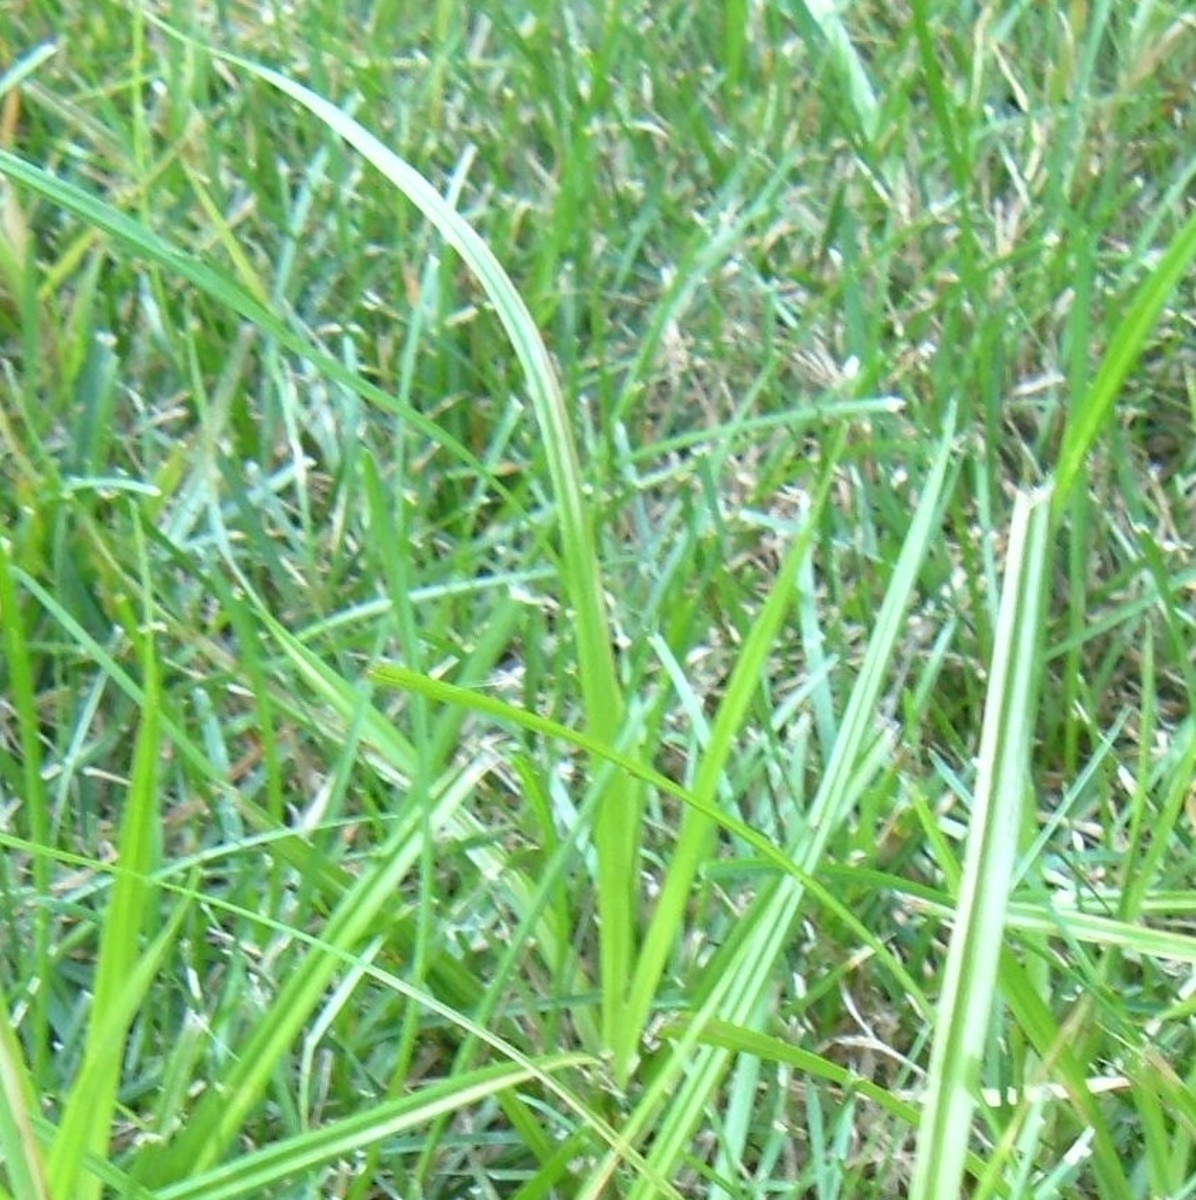 Nutsedge is invasive and hard to eliminate